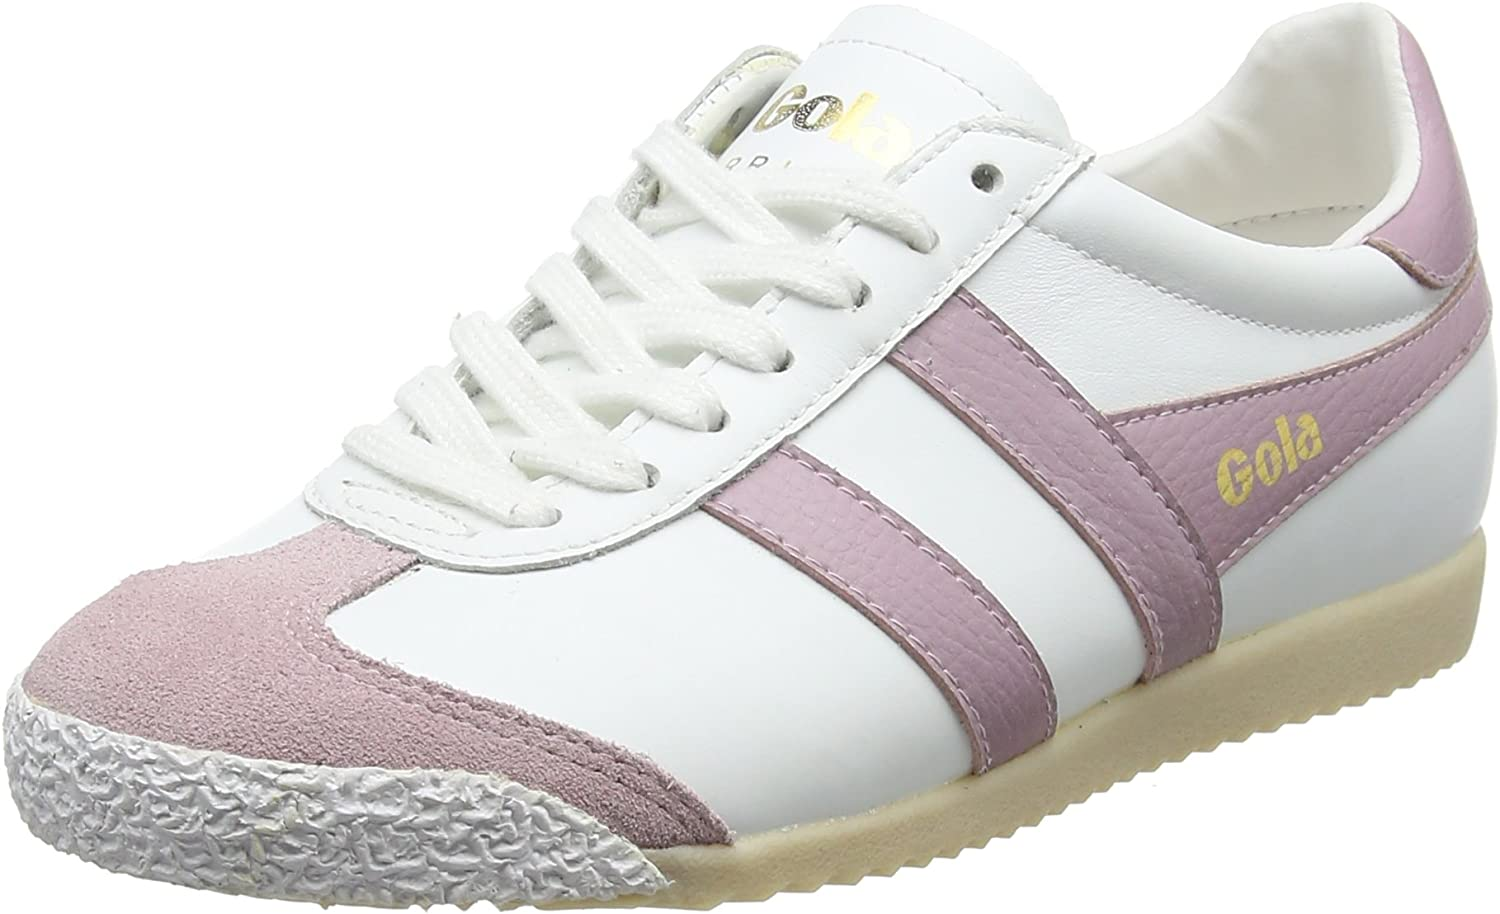 Gola Women's Harrier 50 Leather White Pastel Pnk Trainers